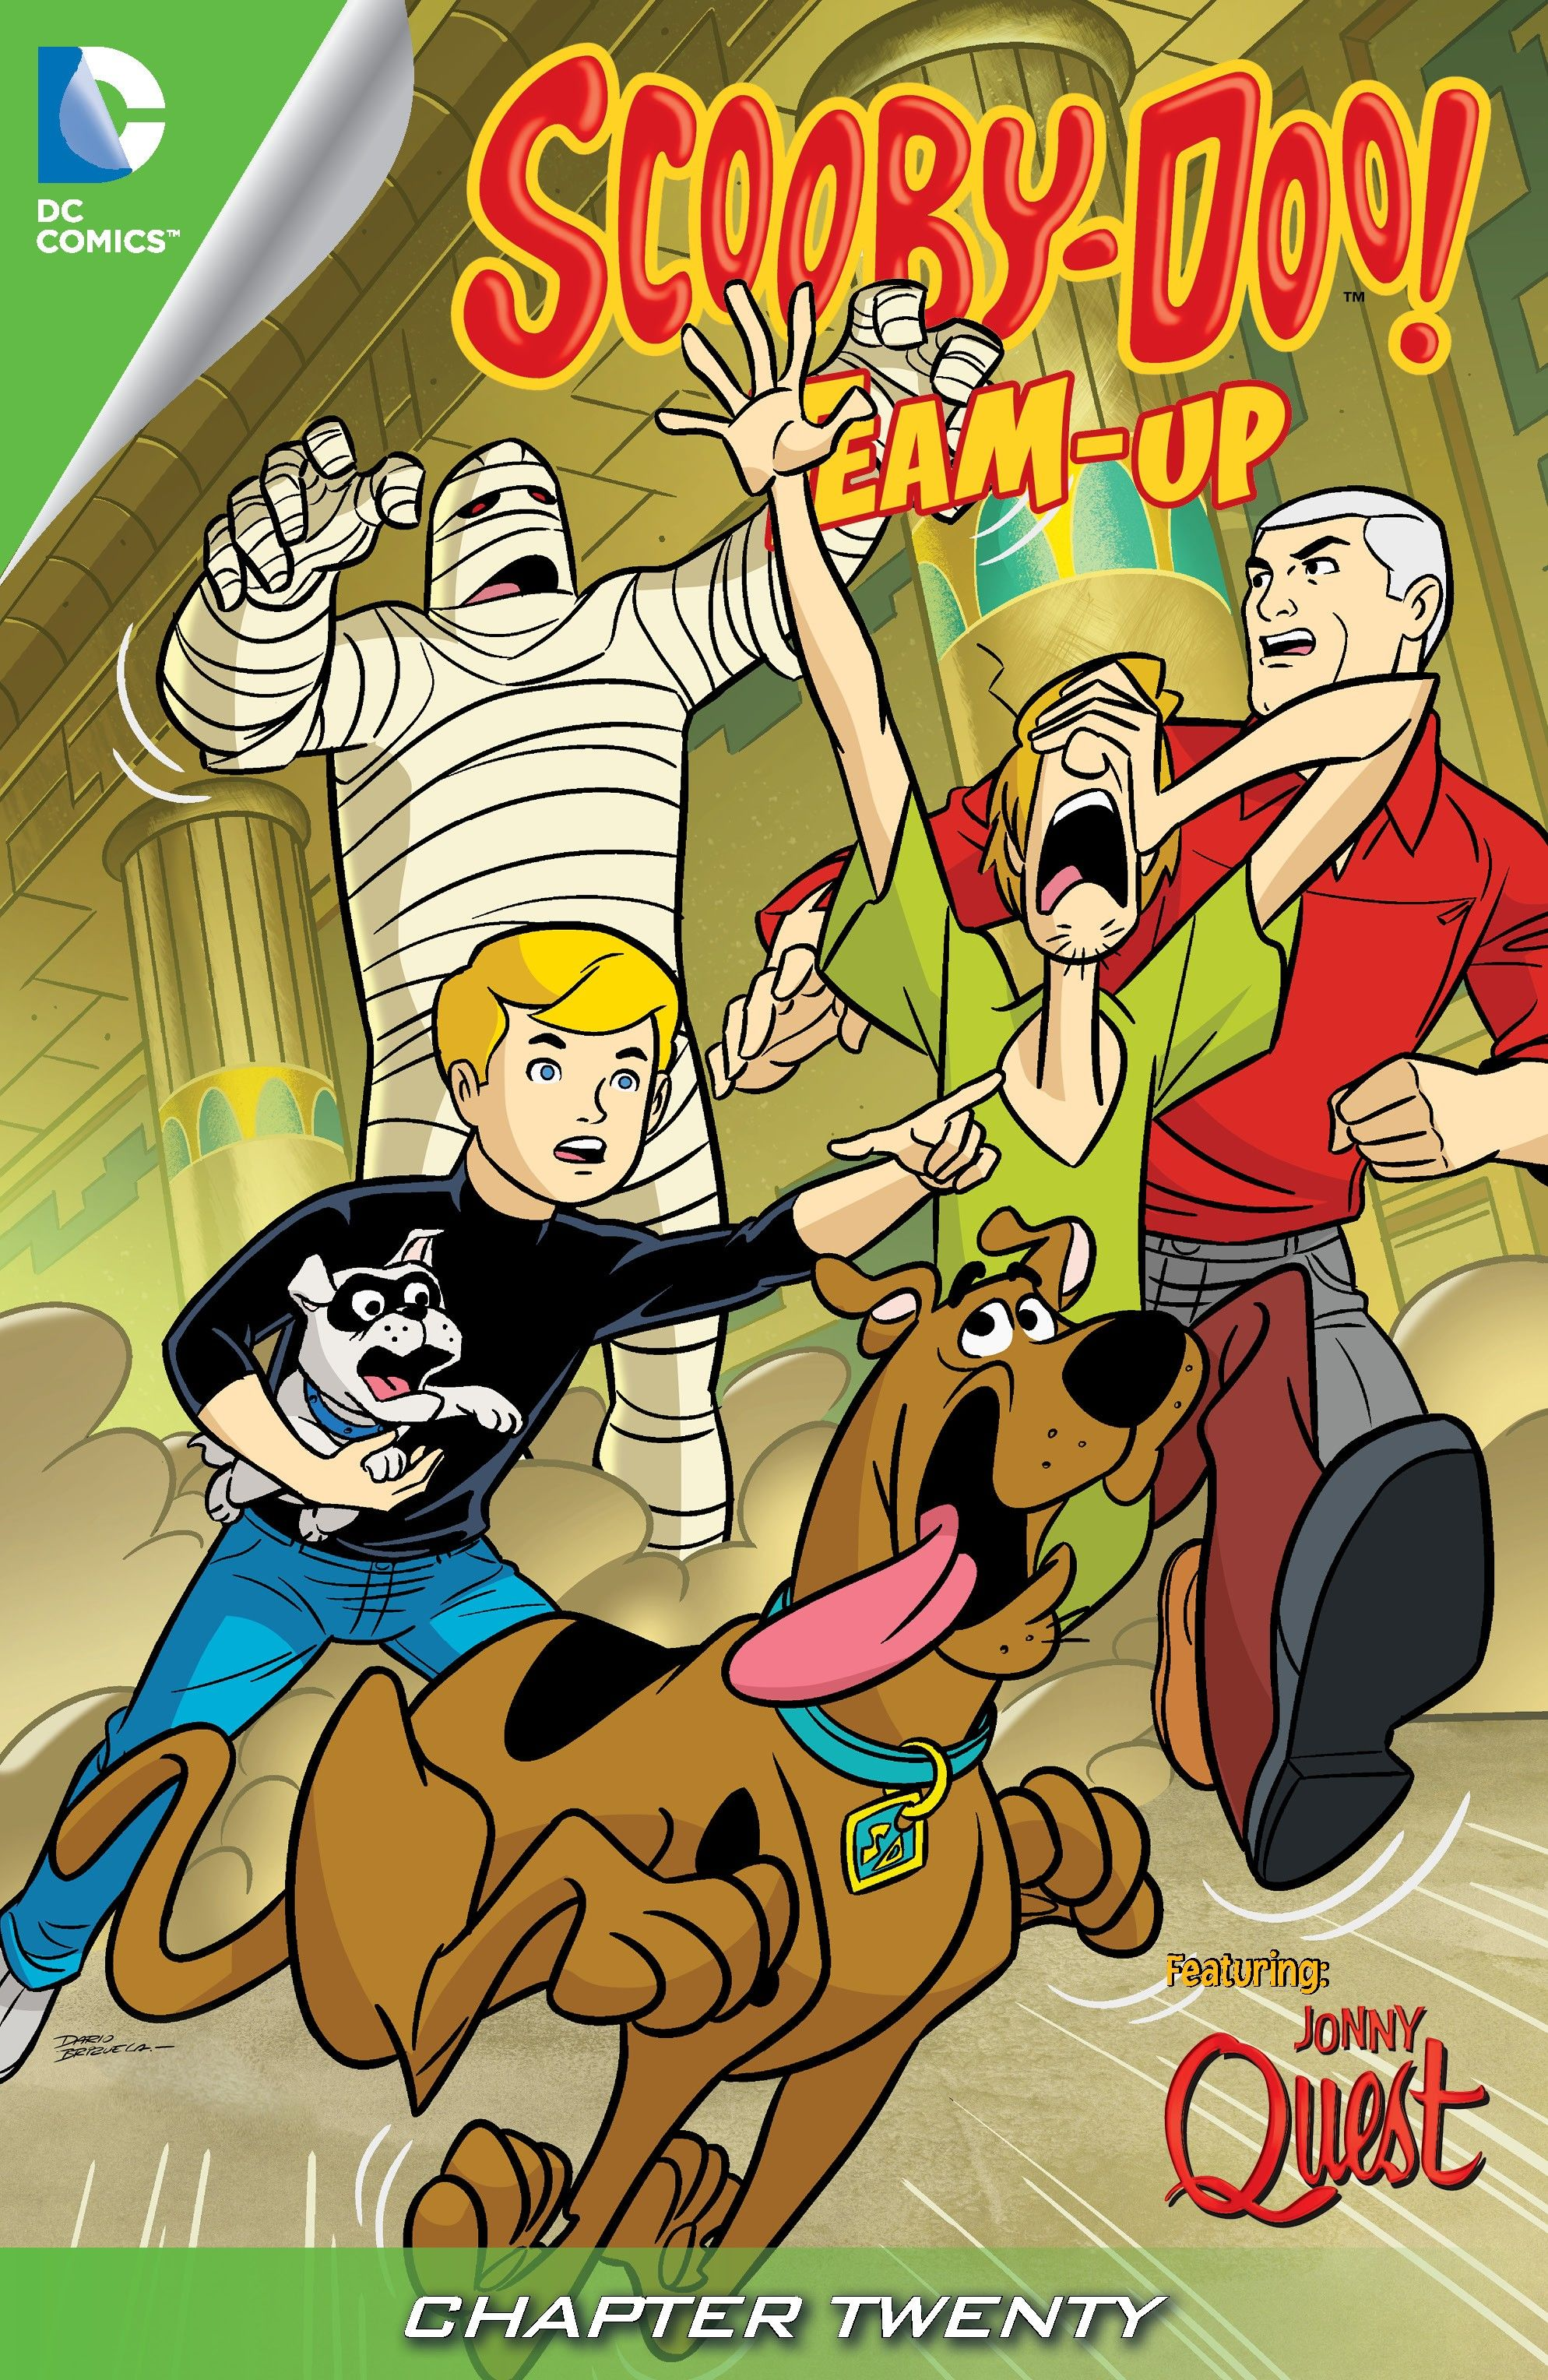 Read online Scooby-Doo! Team-Up comic -  Issue #20 - 2